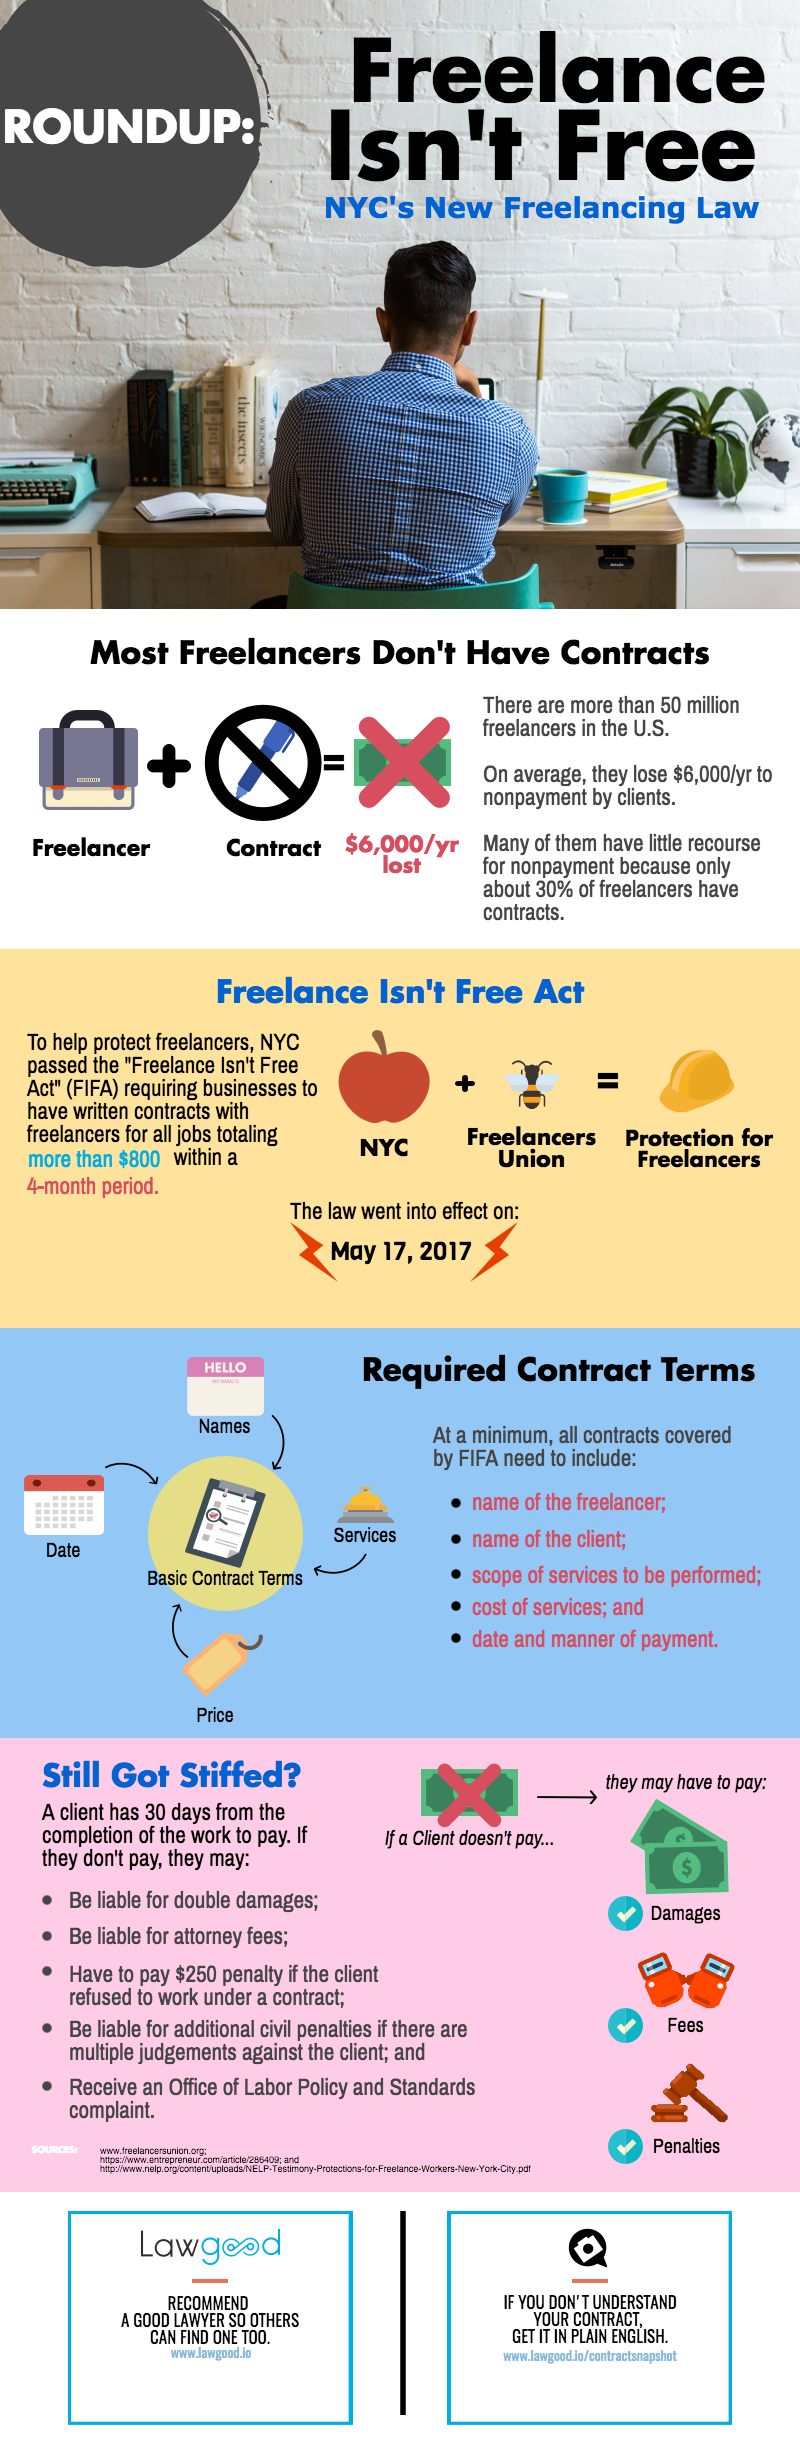 Freelance isn't free act